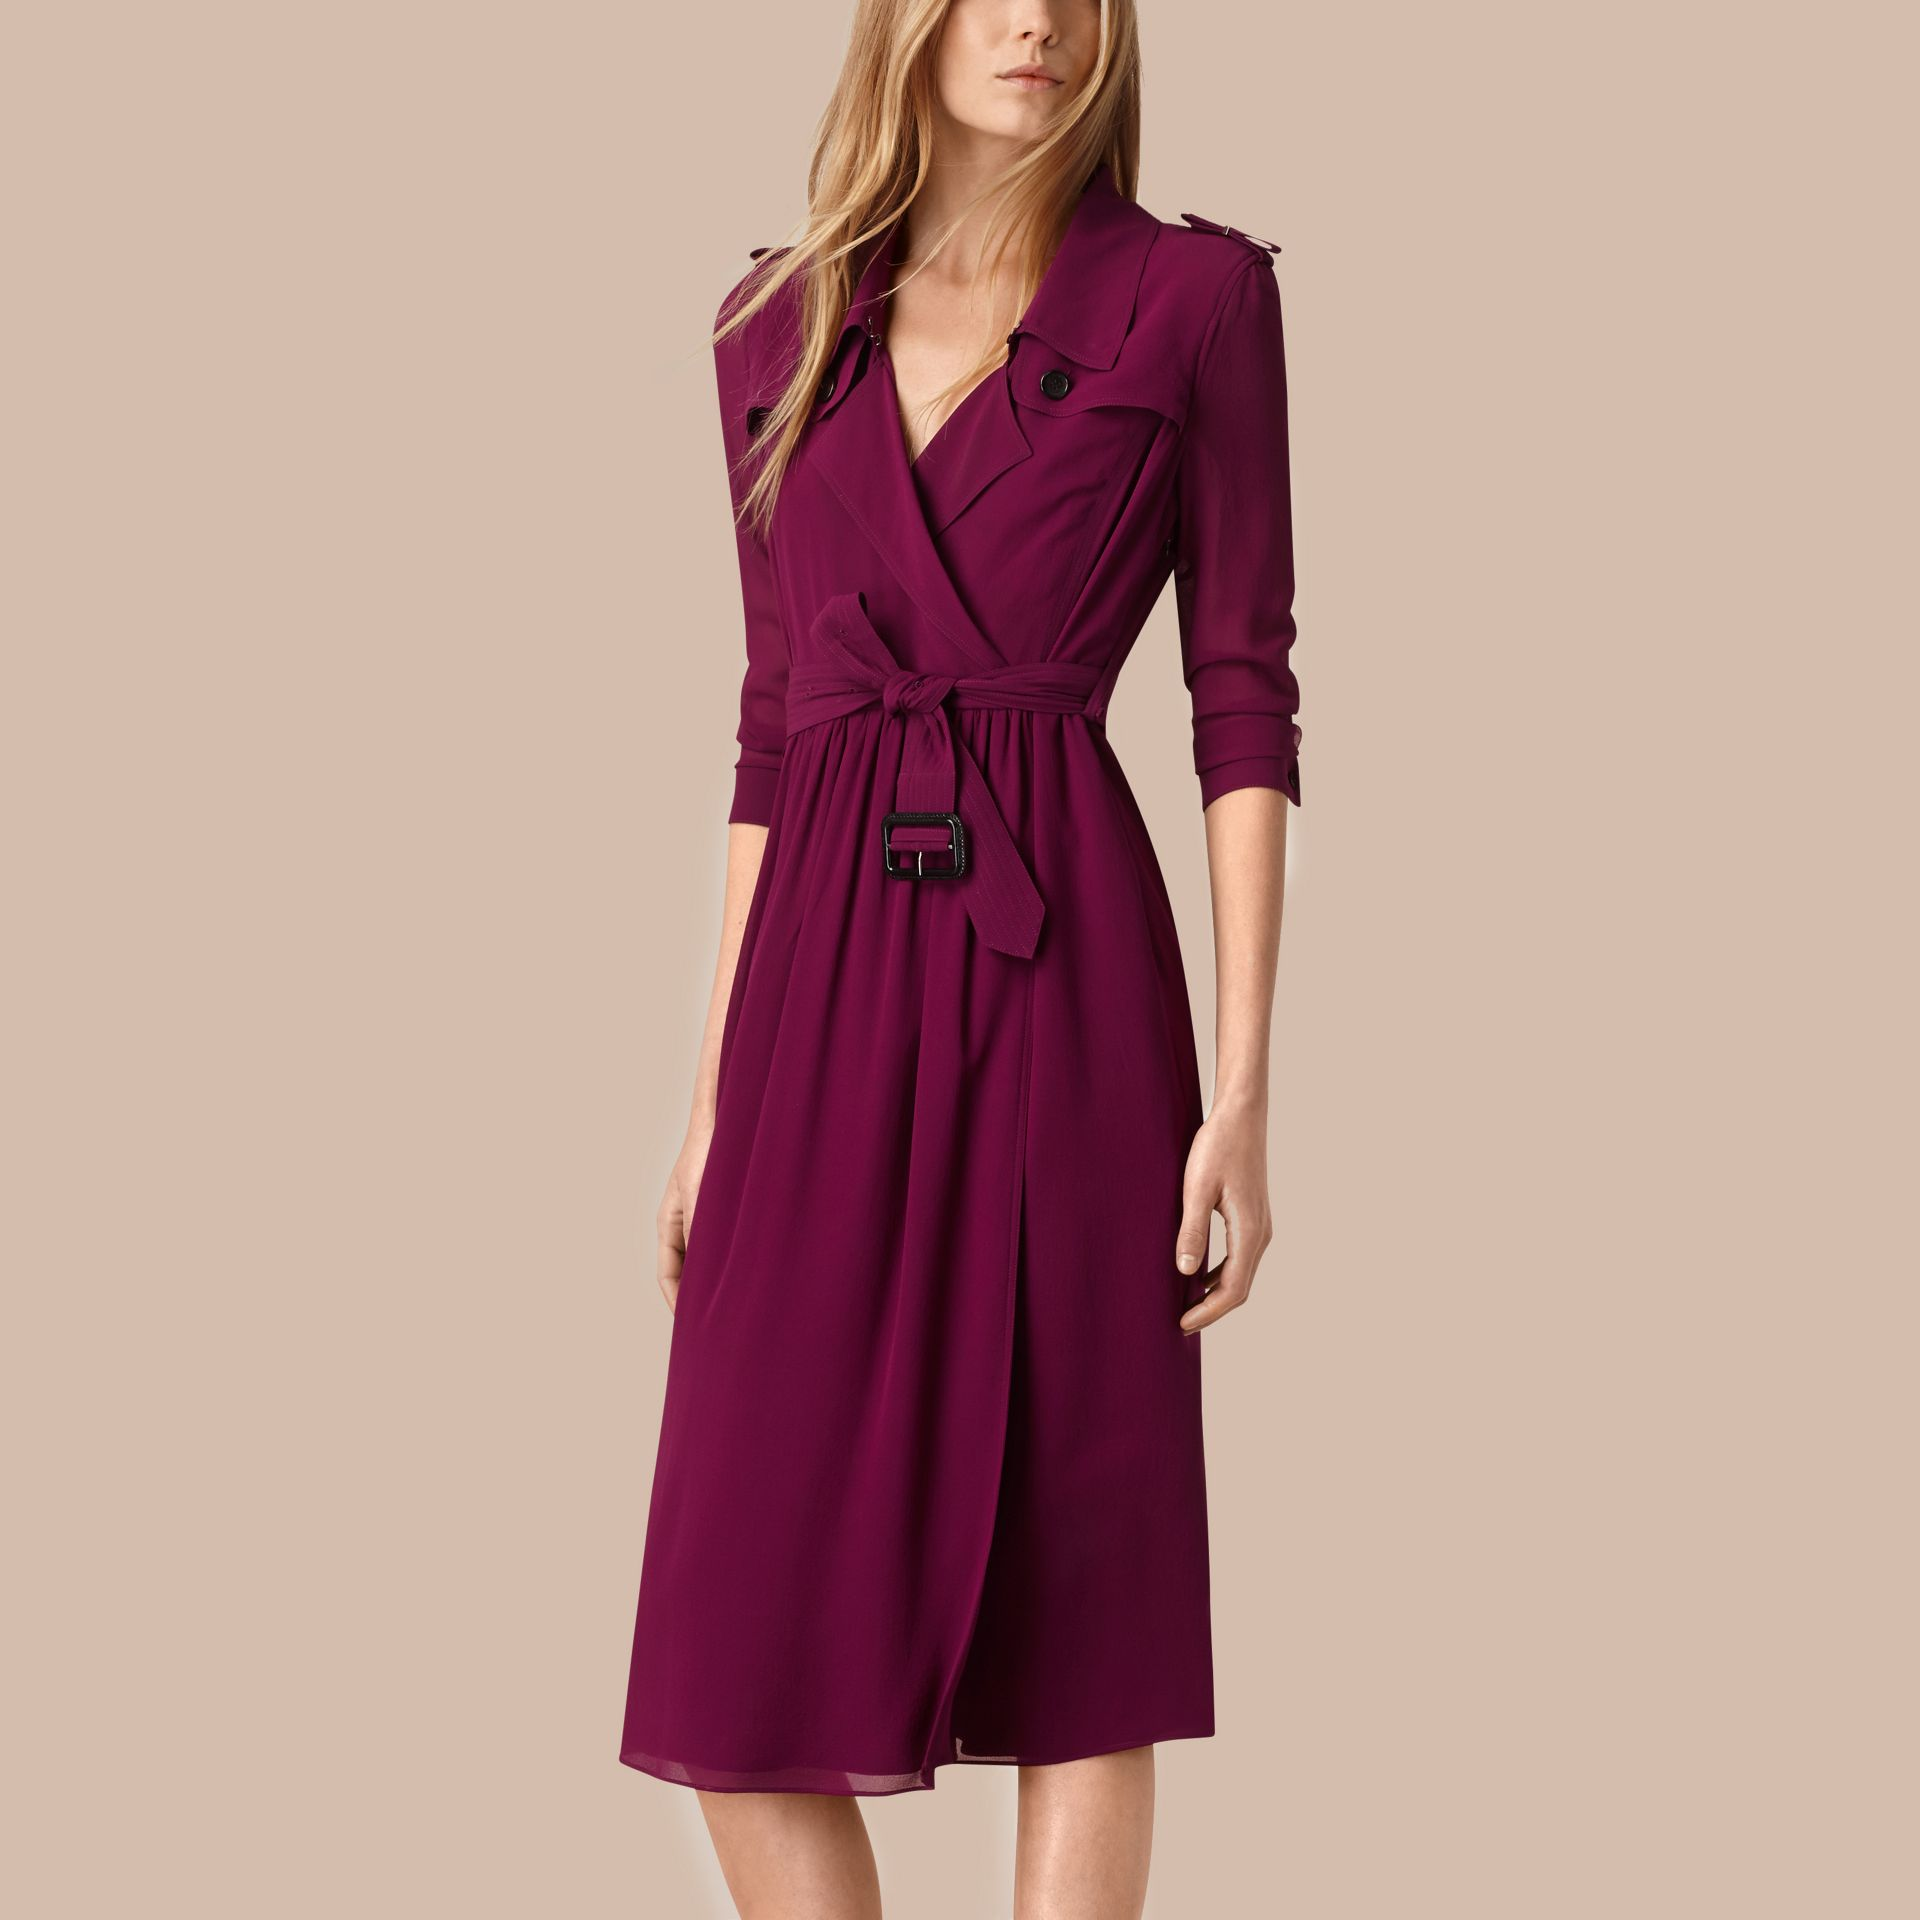 Silk Wrap Trench Dress in Bright Burgundy - Women | Burberry - gallery image 1